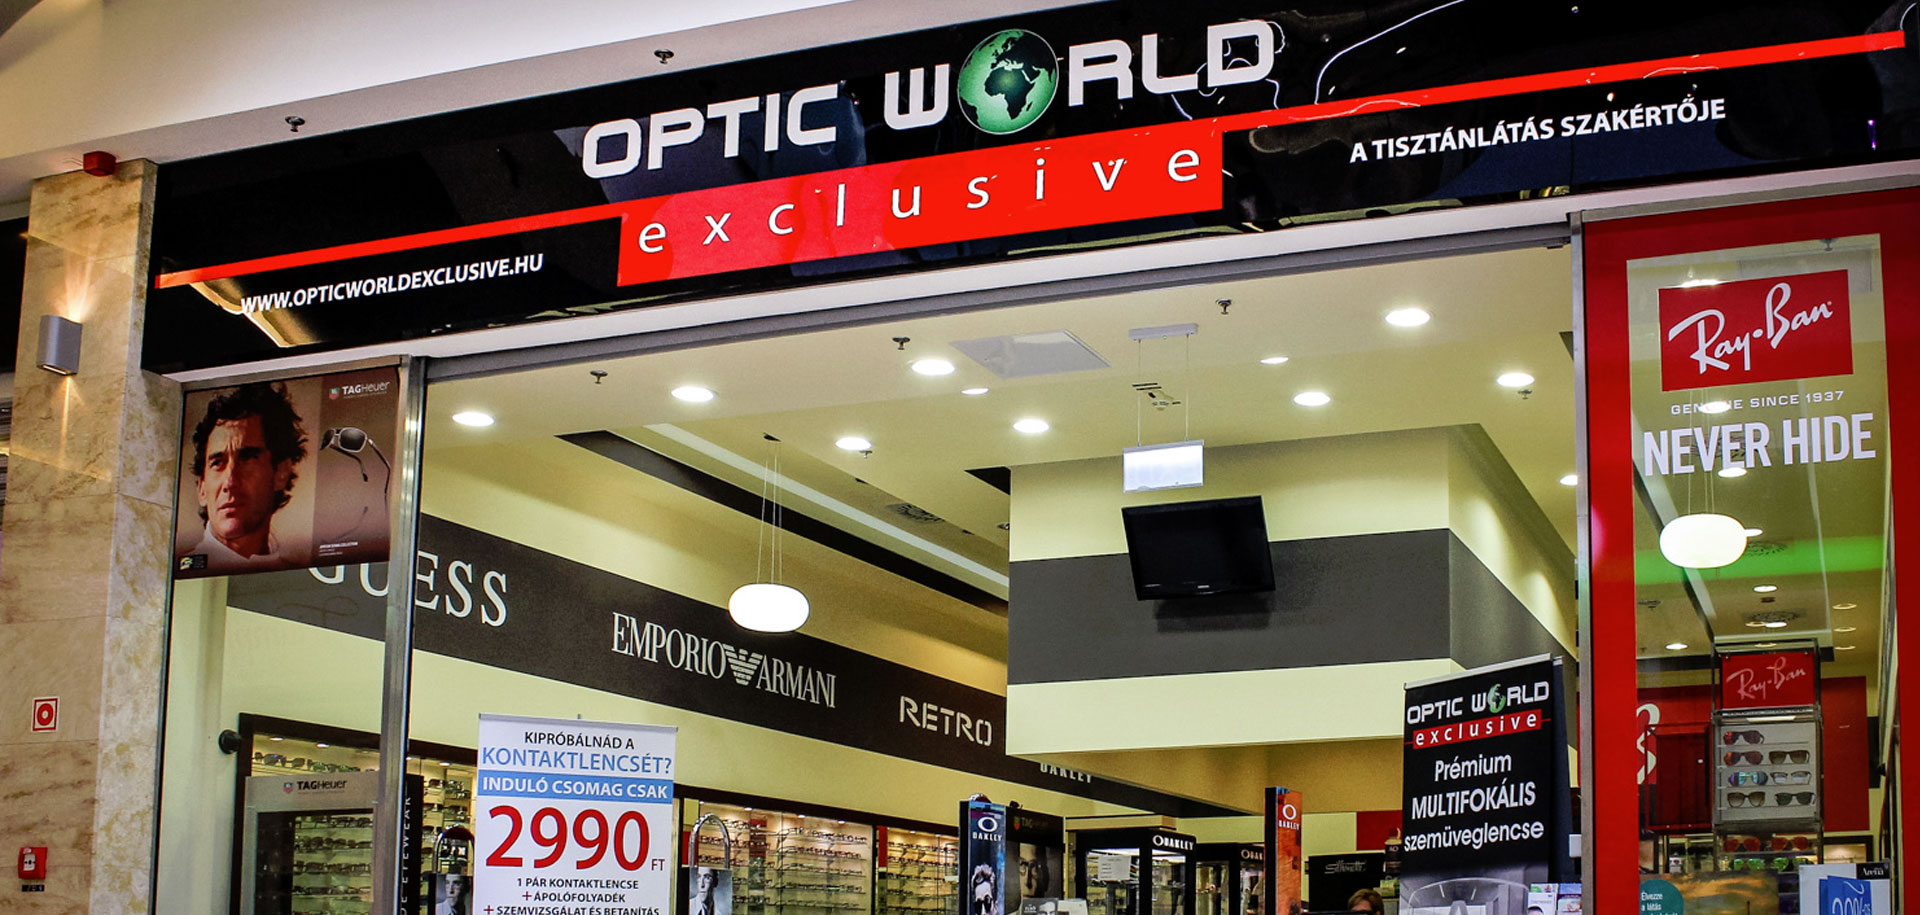 Arena Mall - Optic World Exclusive ec643d03c1